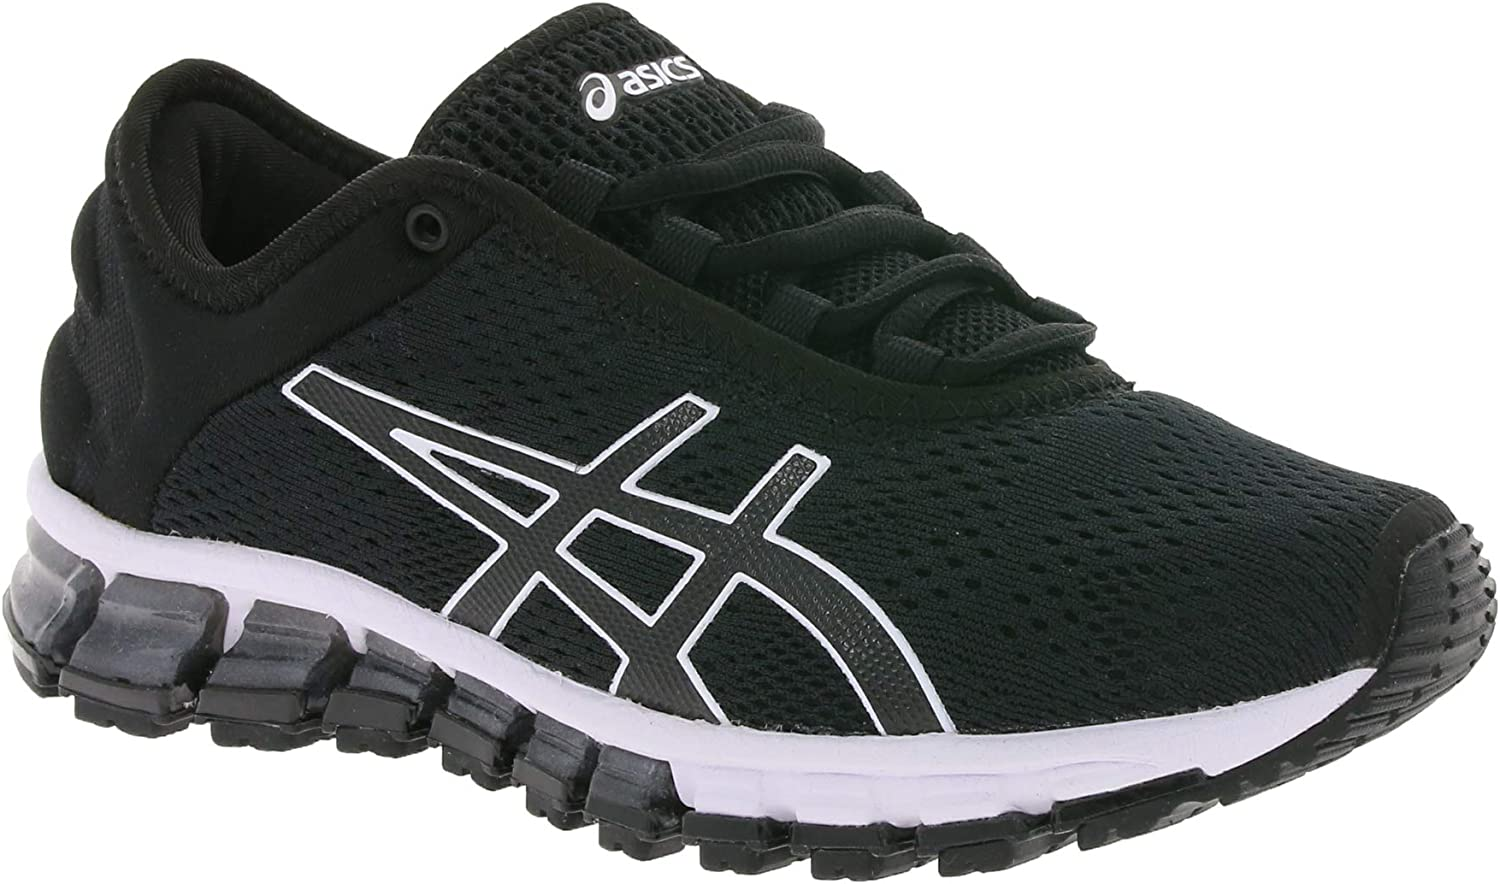 ASICS Gel-Quantum 180 3 - Zapatillas de Running para Mujer, Color Negro y Blanco: Amazon.es: Zapatos y complementos